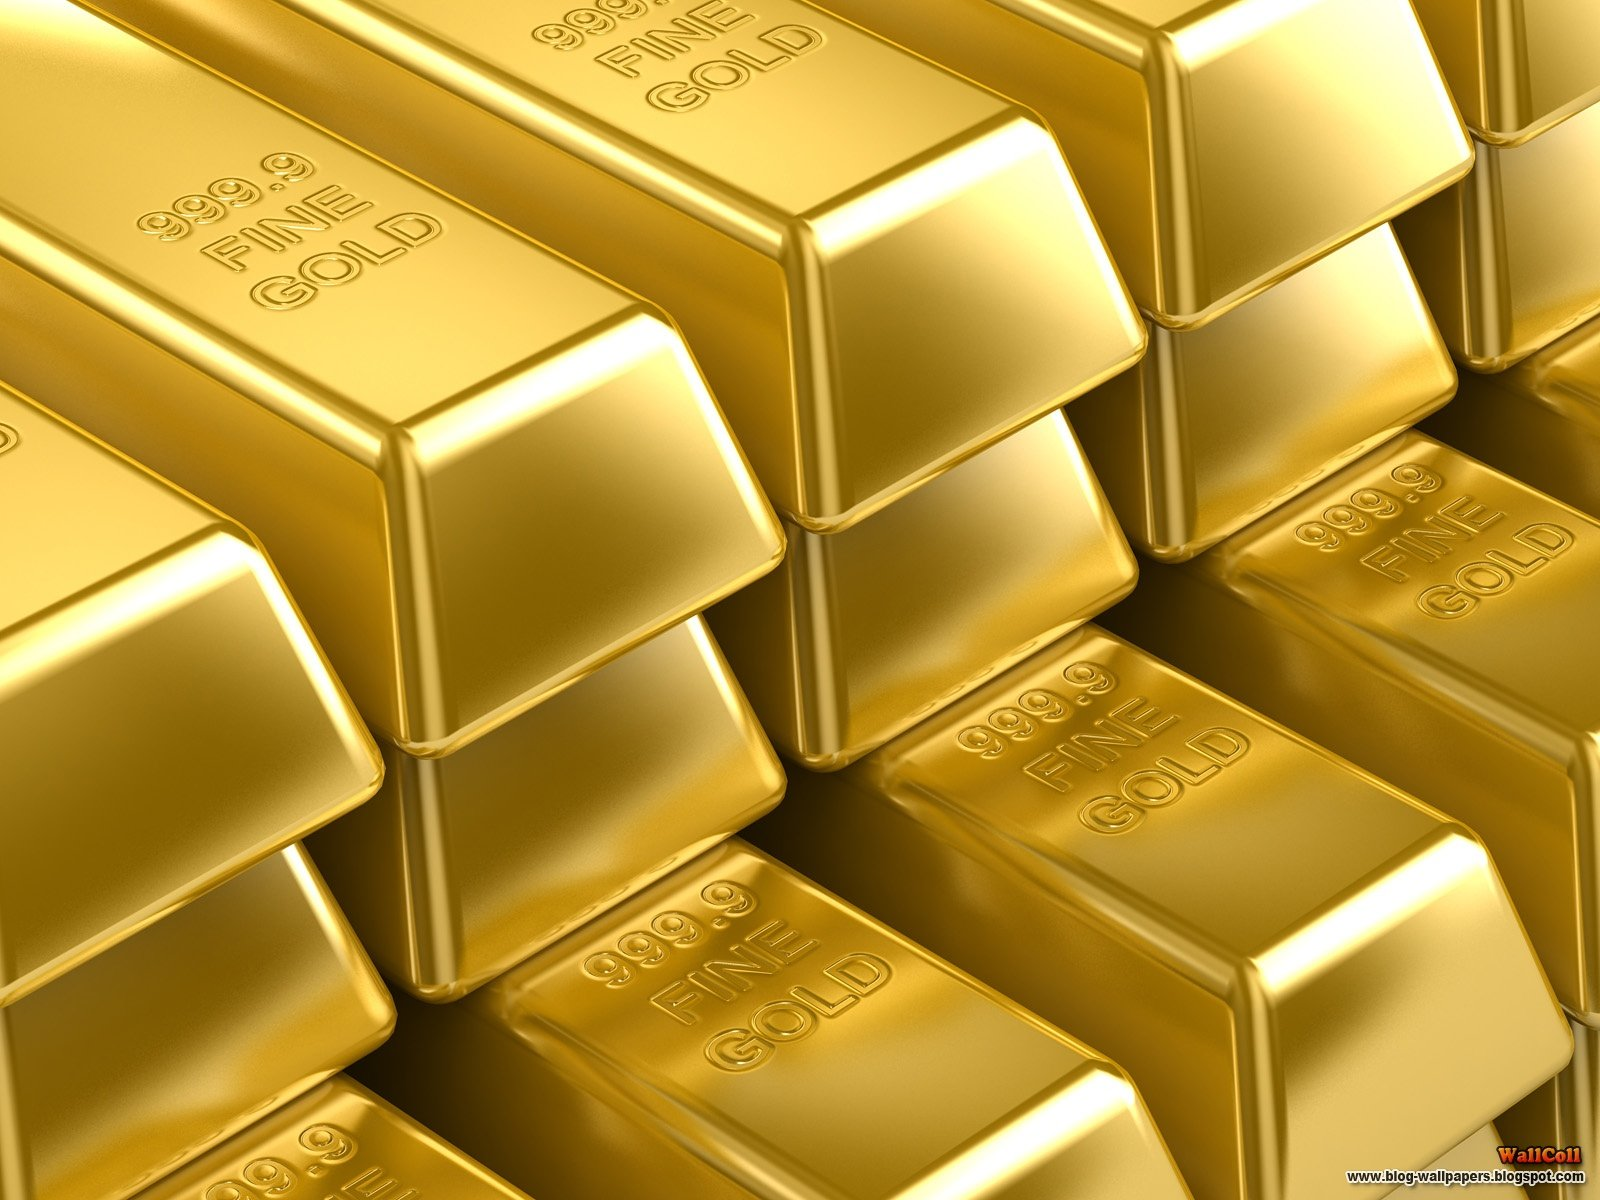 gold bullion, clean gold, texture, background, download